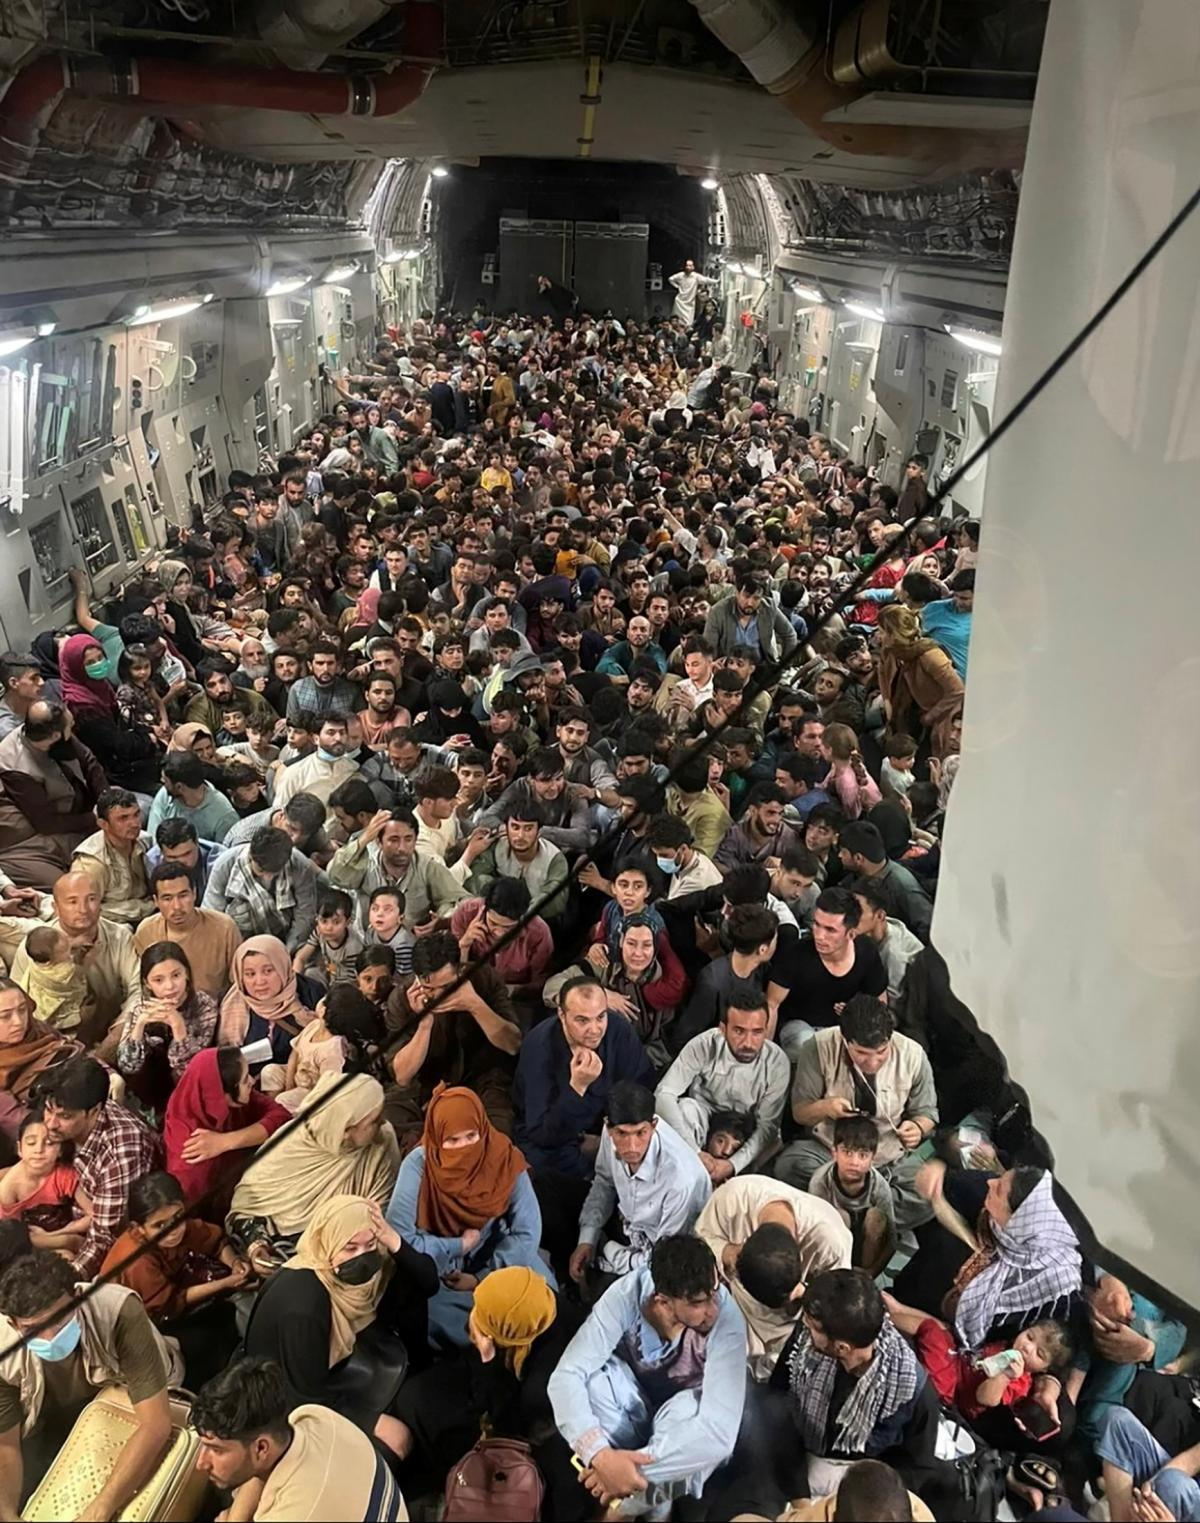 Evacuees crowd the interior of a U.S. Air Force C-17 Globemaster III transport aircraft, carrying some 640 Afghans to Qatar from Kabul on Sunday.